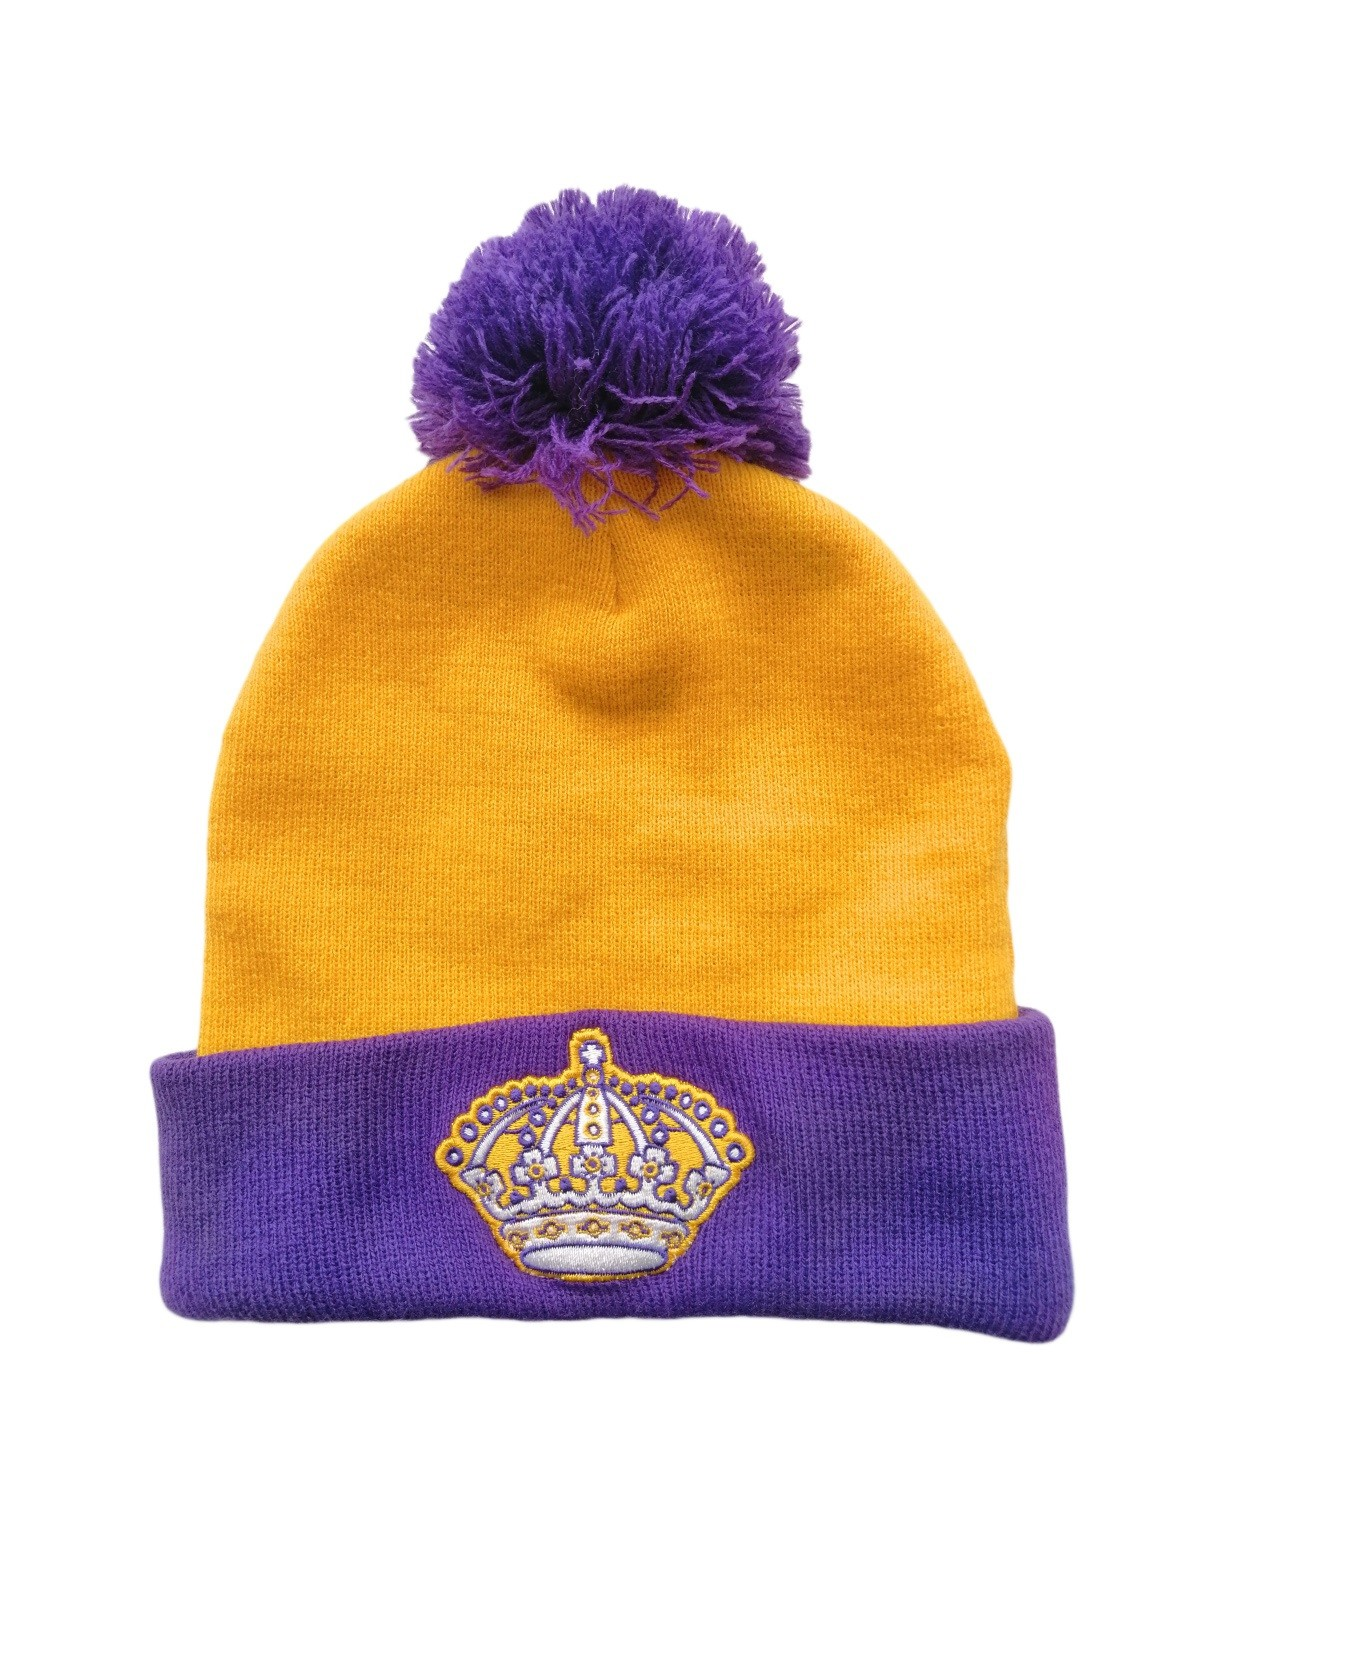 MITCHELL & NESS Los Angeles Kings Winter Hat EU091